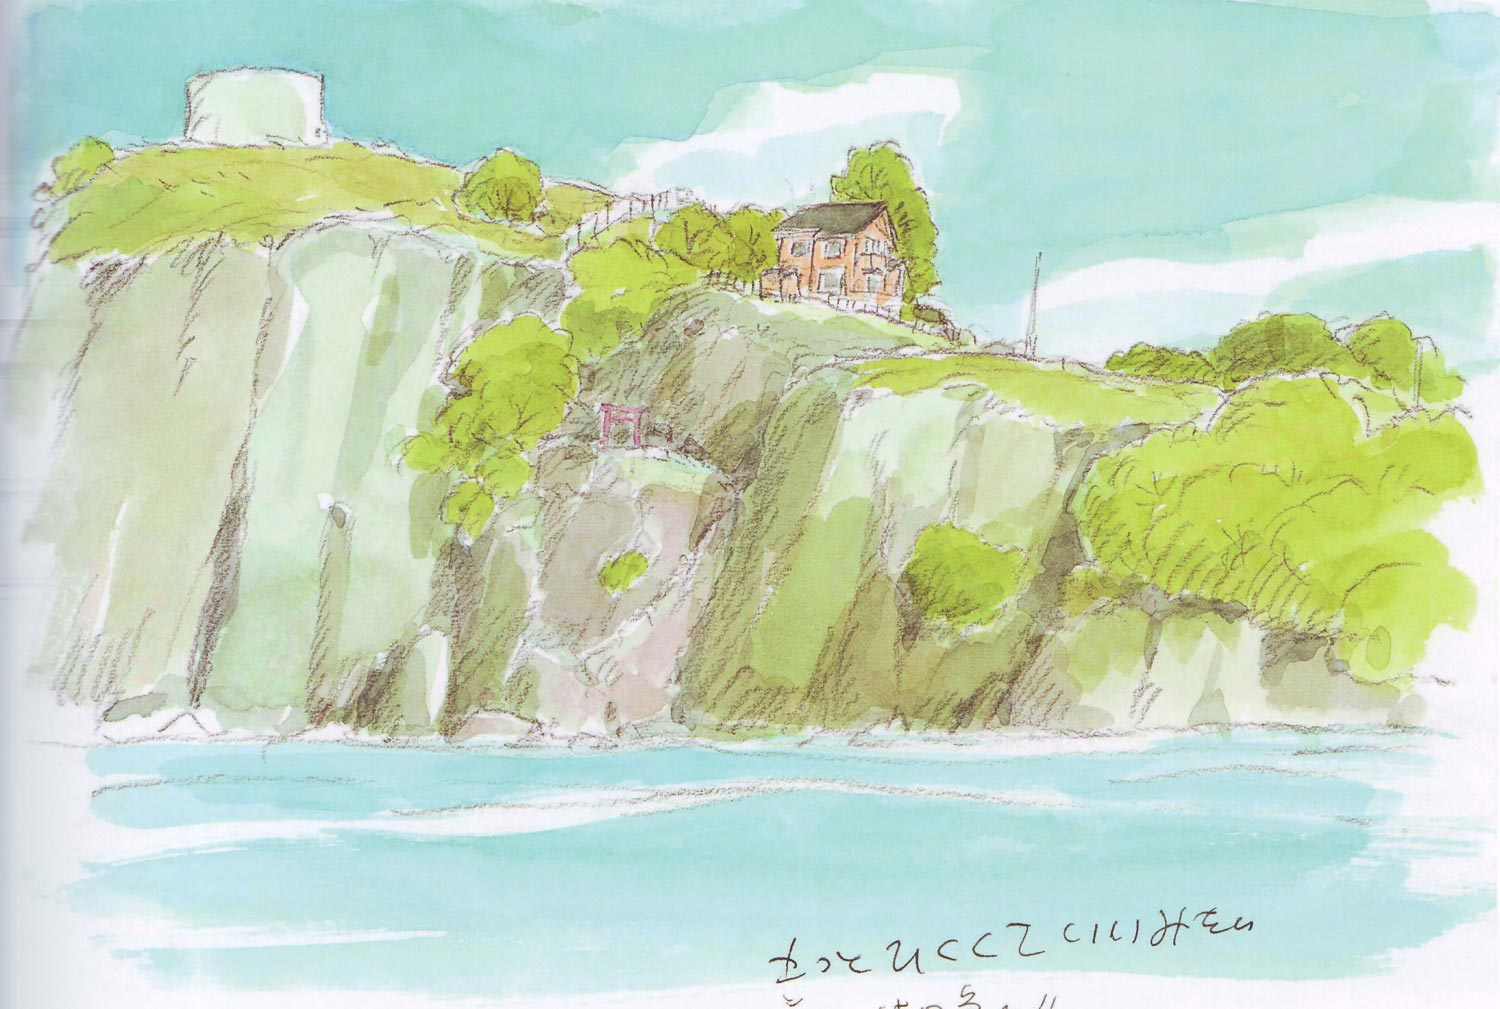 ponyo_on_the_cliff_by_the_sea_background_09.jpg